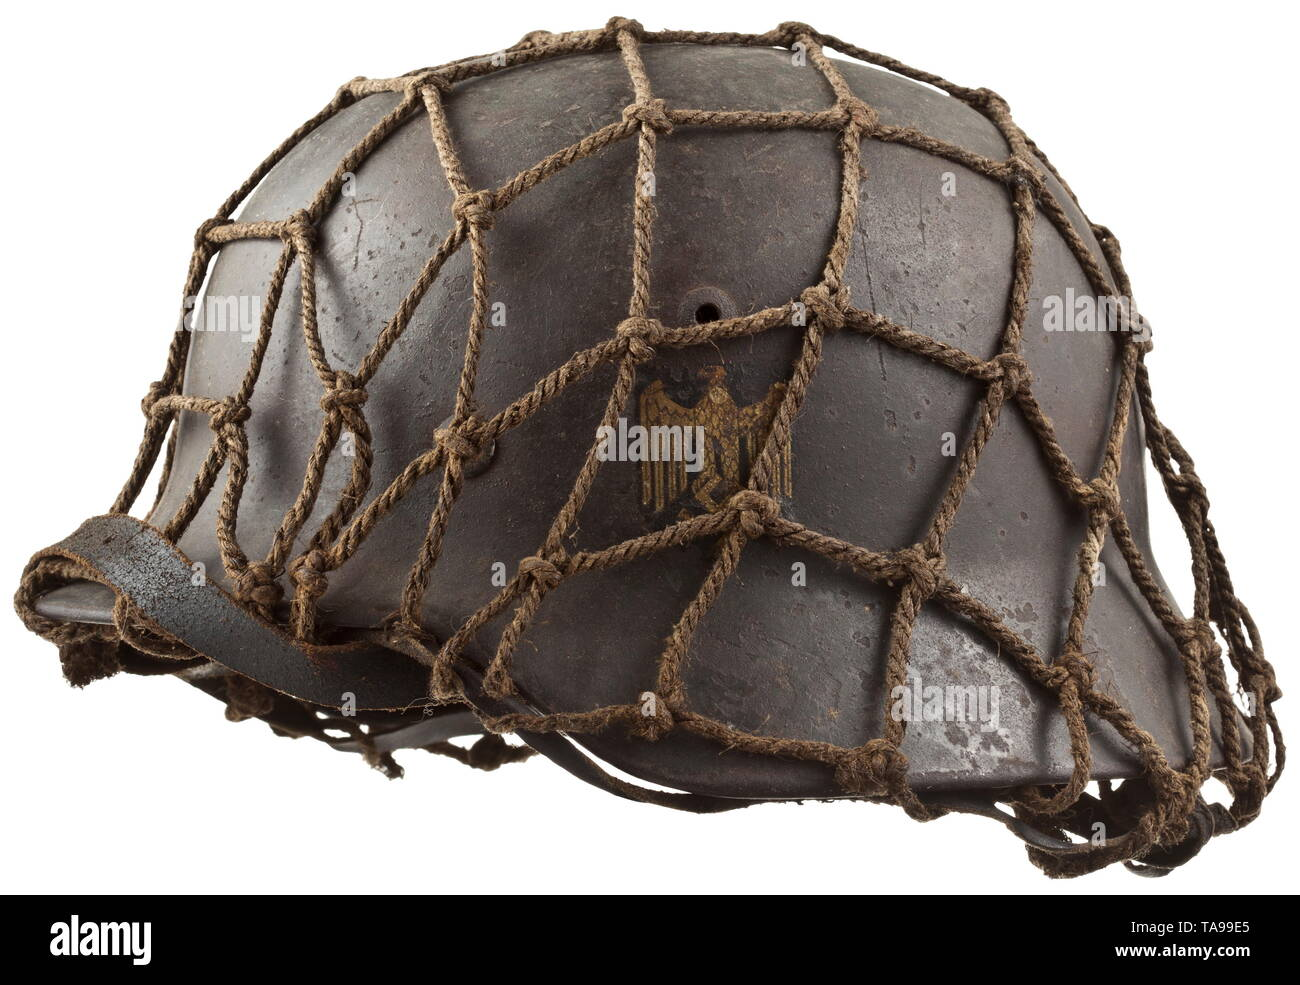 A steel helmet M 40 with camouflage netting Steel skull with light, rough camouflage paint, the national emblem nearly completely intact, the inside with maker stamping 'ET62' (Thale Iron Works) and '4097', netting stretched for affixing further camouflage material, intact inner liner with chin strap. historic, historical, army, armies, armed forces, military, militaria, object, objects, stills, clipping, clippings, cut out, cut-out, cut-outs, 20th century, Editorial-Use-Only - Stock Image